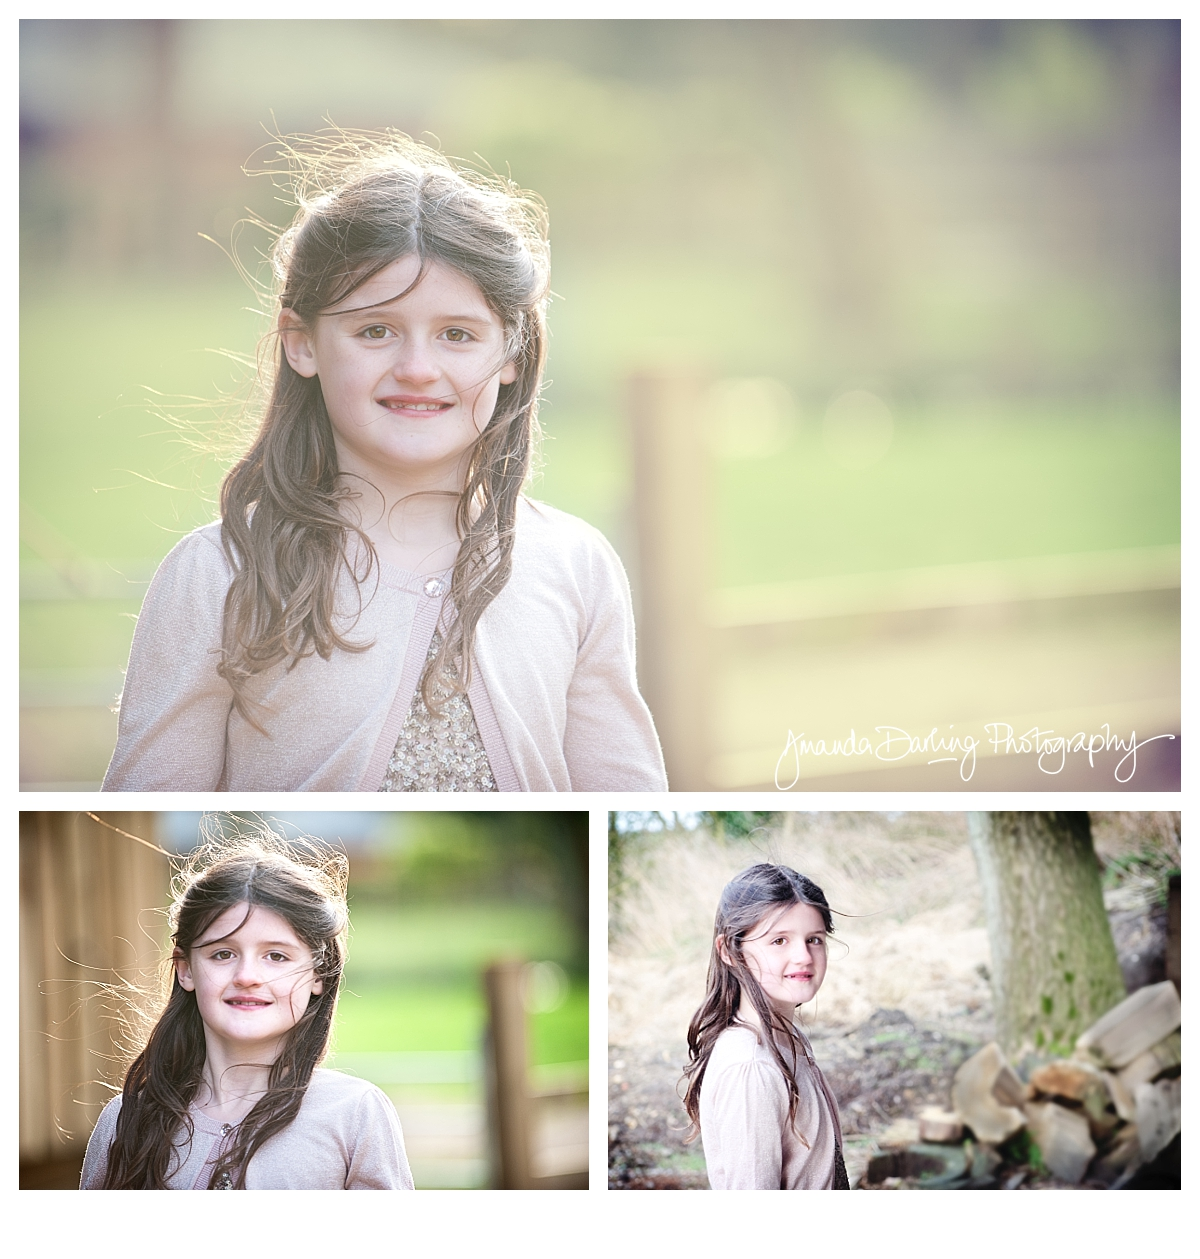 Misty-childrens-photography-surrey